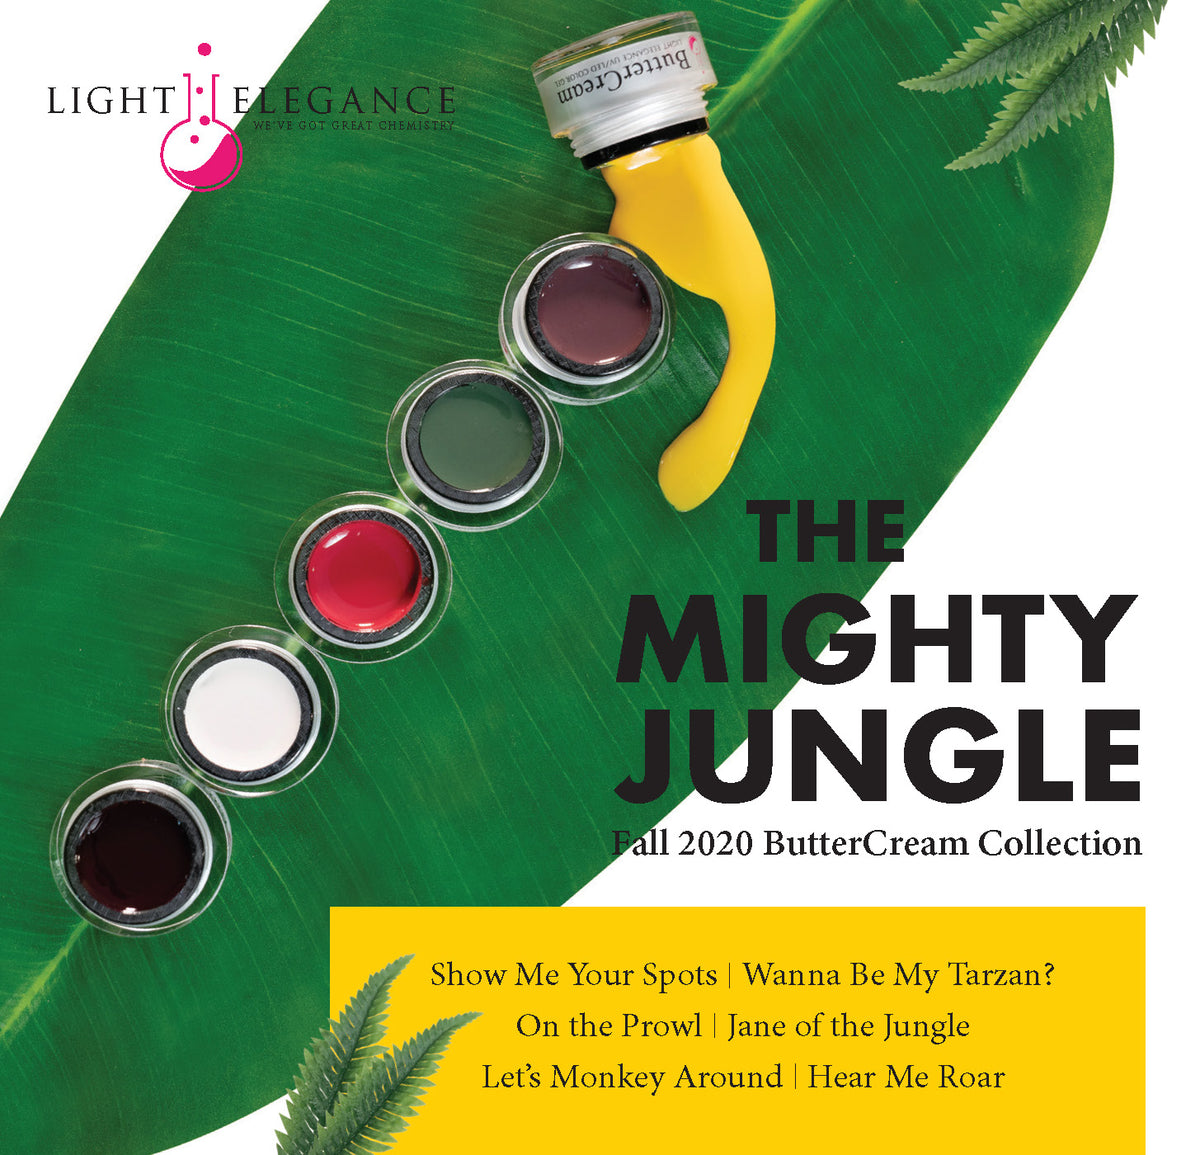 Light Elegence Butter Cream The Mighty Jungle